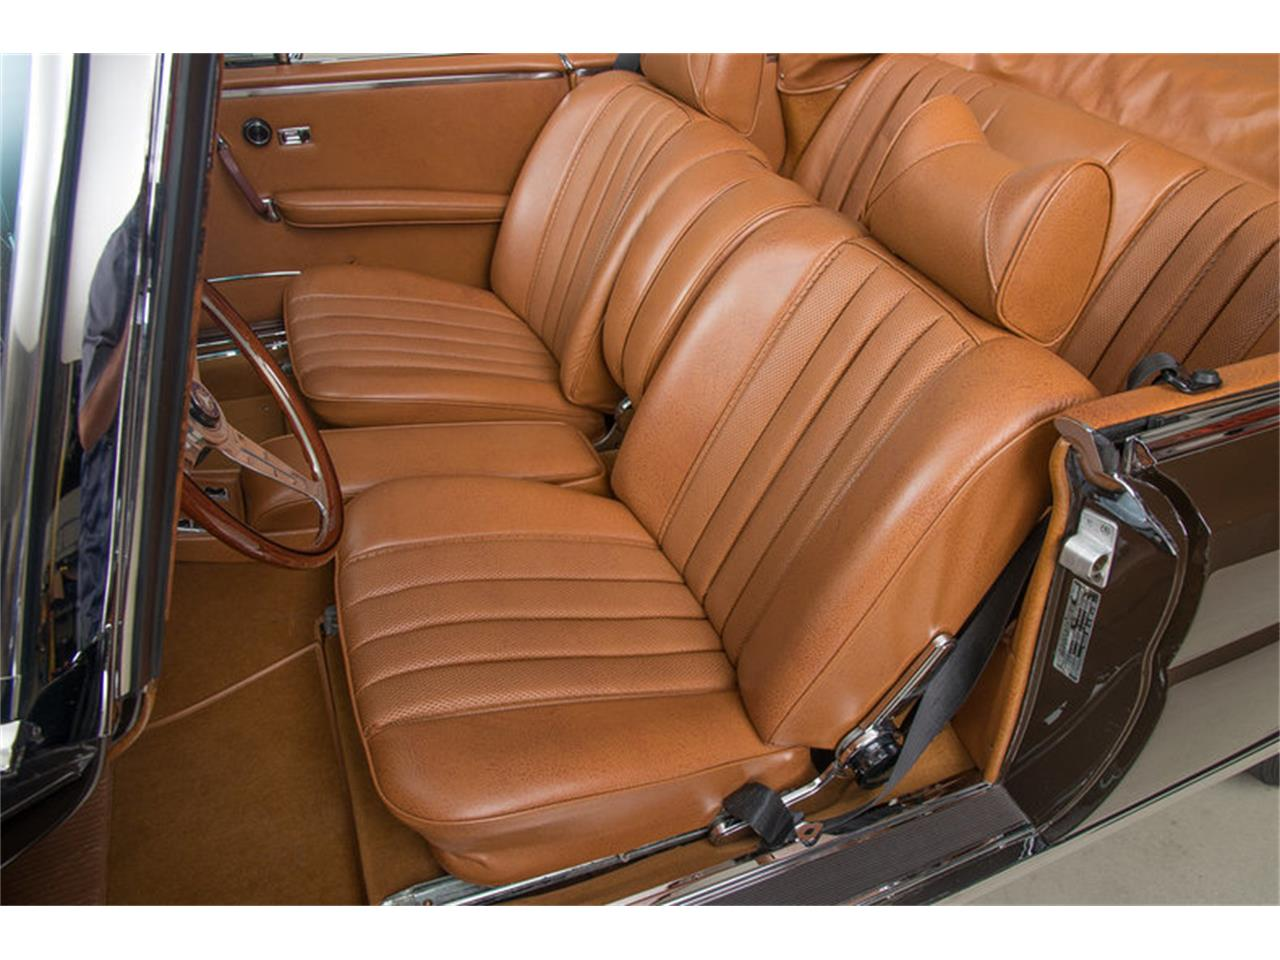 Large Picture of '71 280 SE 3.5 Cabriolet located in California Auction Vehicle Offered by Canepa - G0JQ